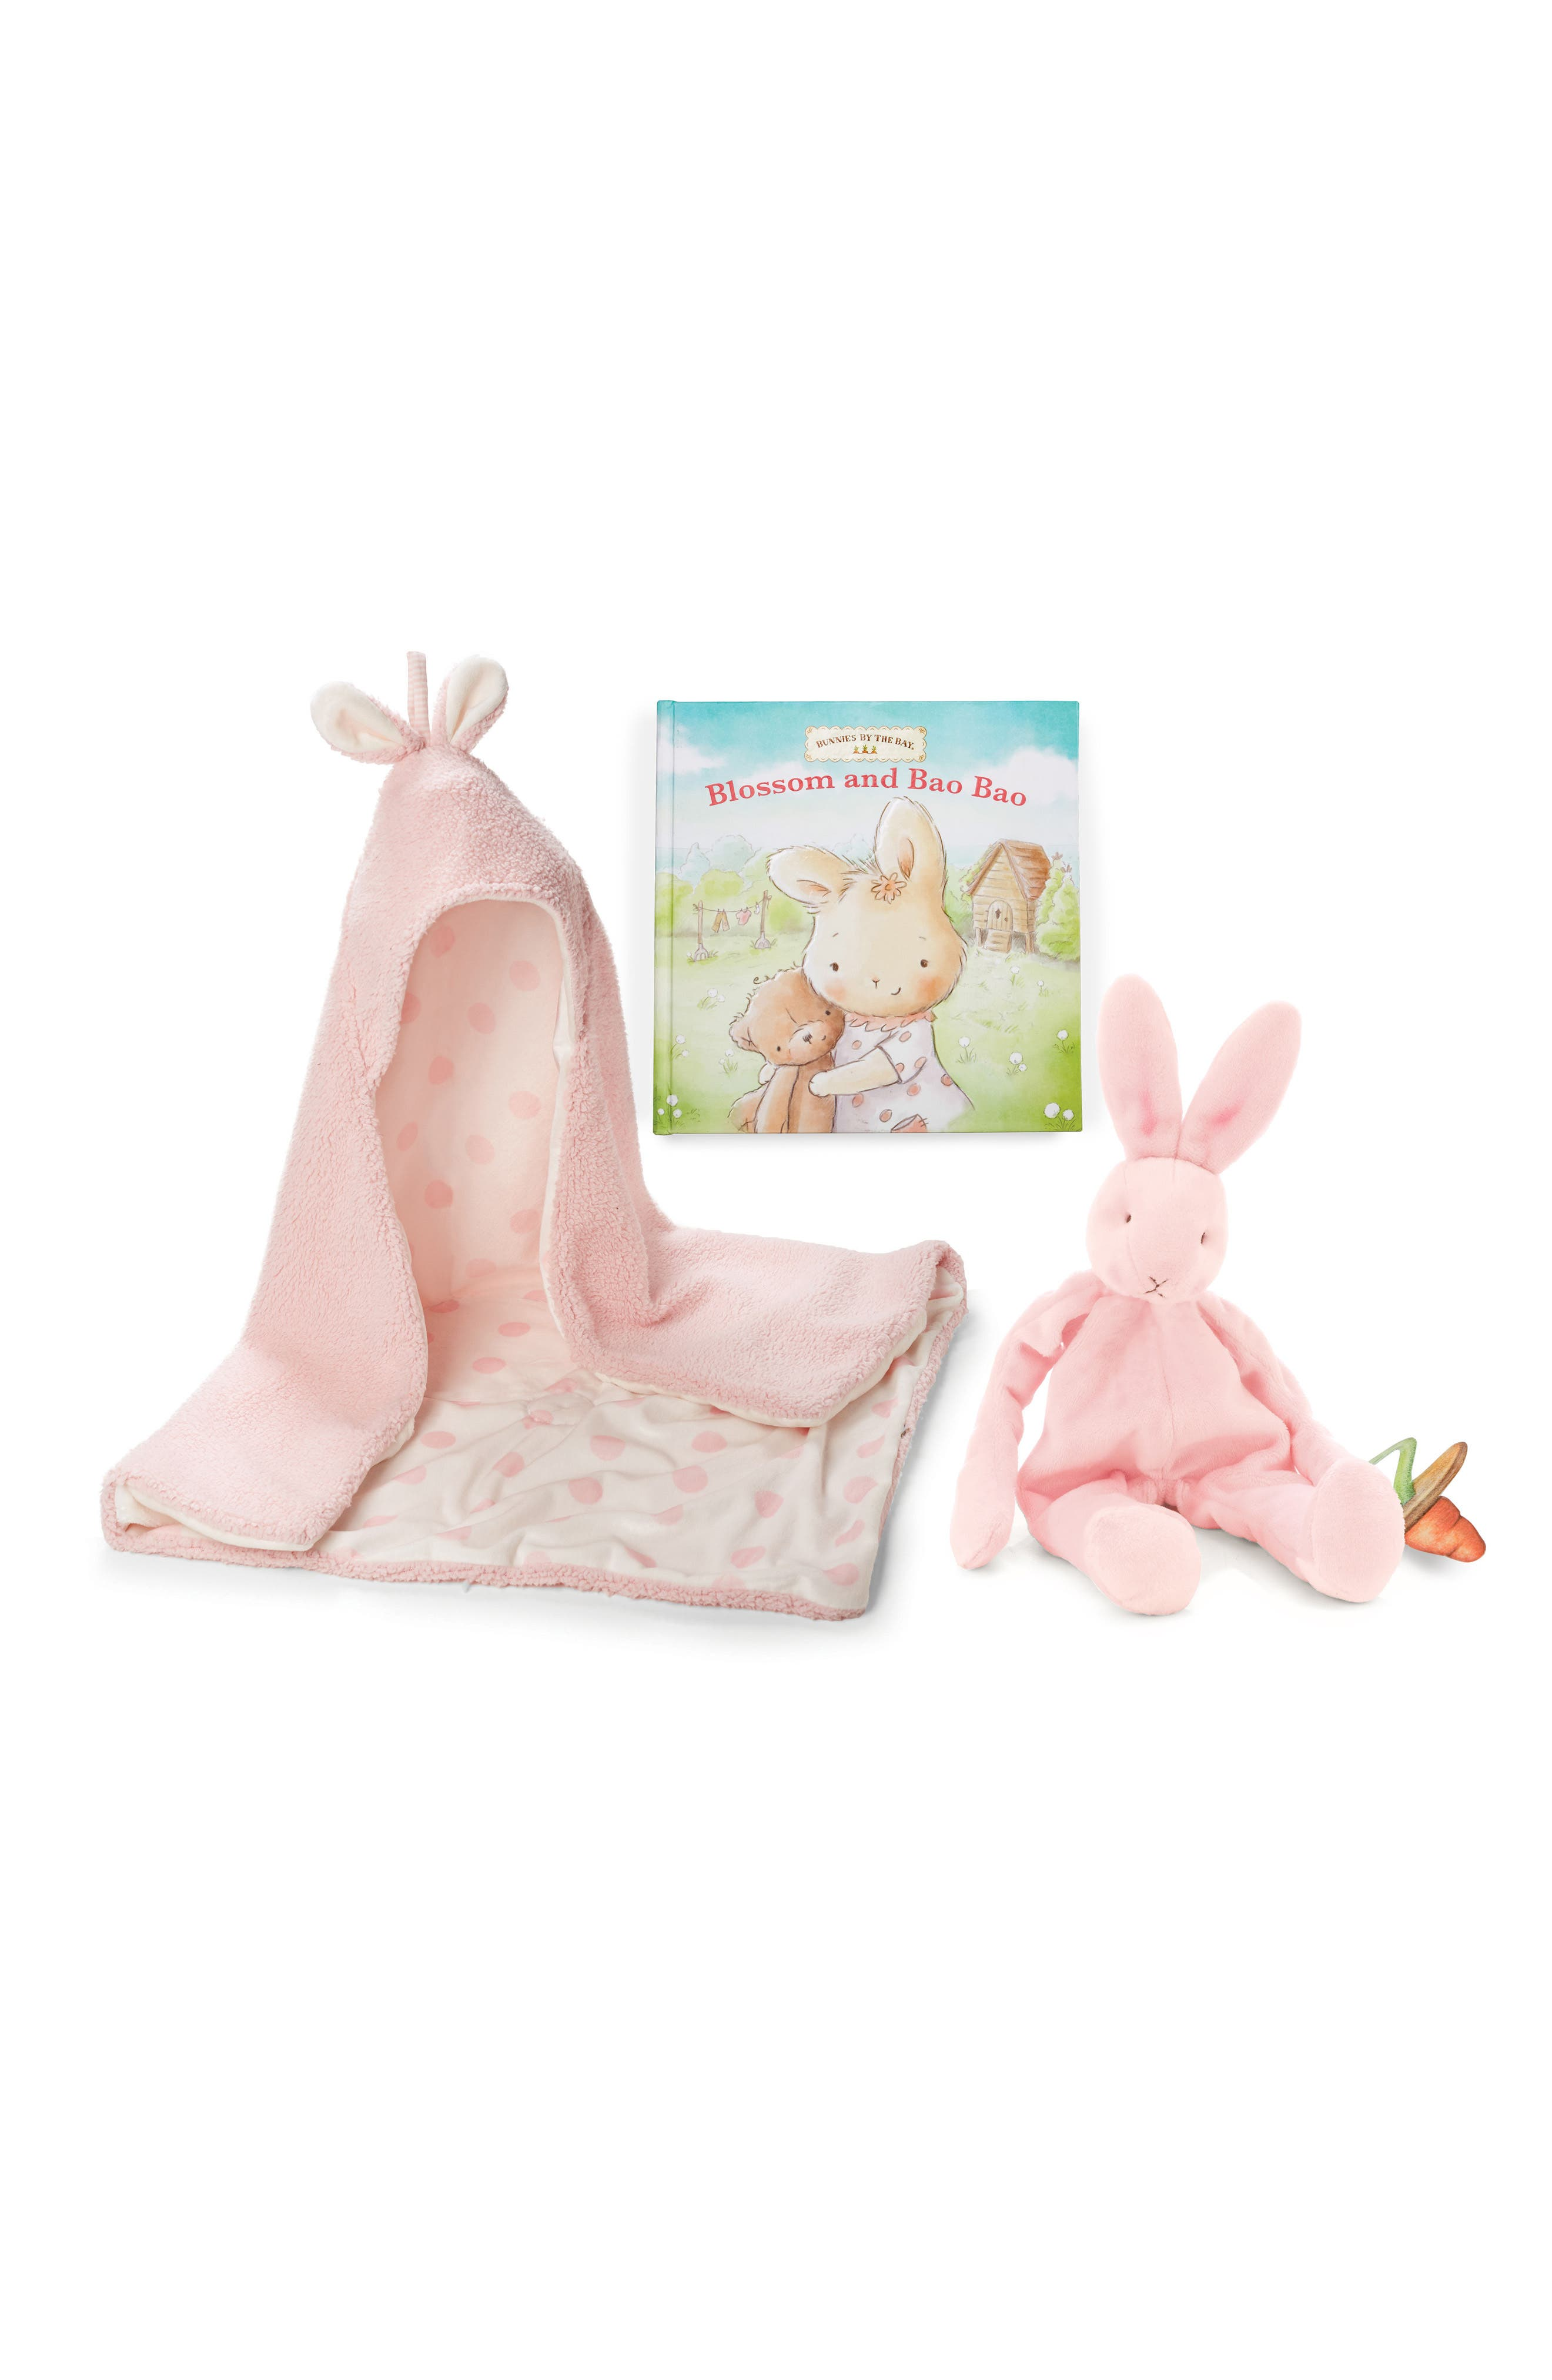 Hooded Blanket, Stuffed Animal & Board Book Set,                         Main,                         color, 680